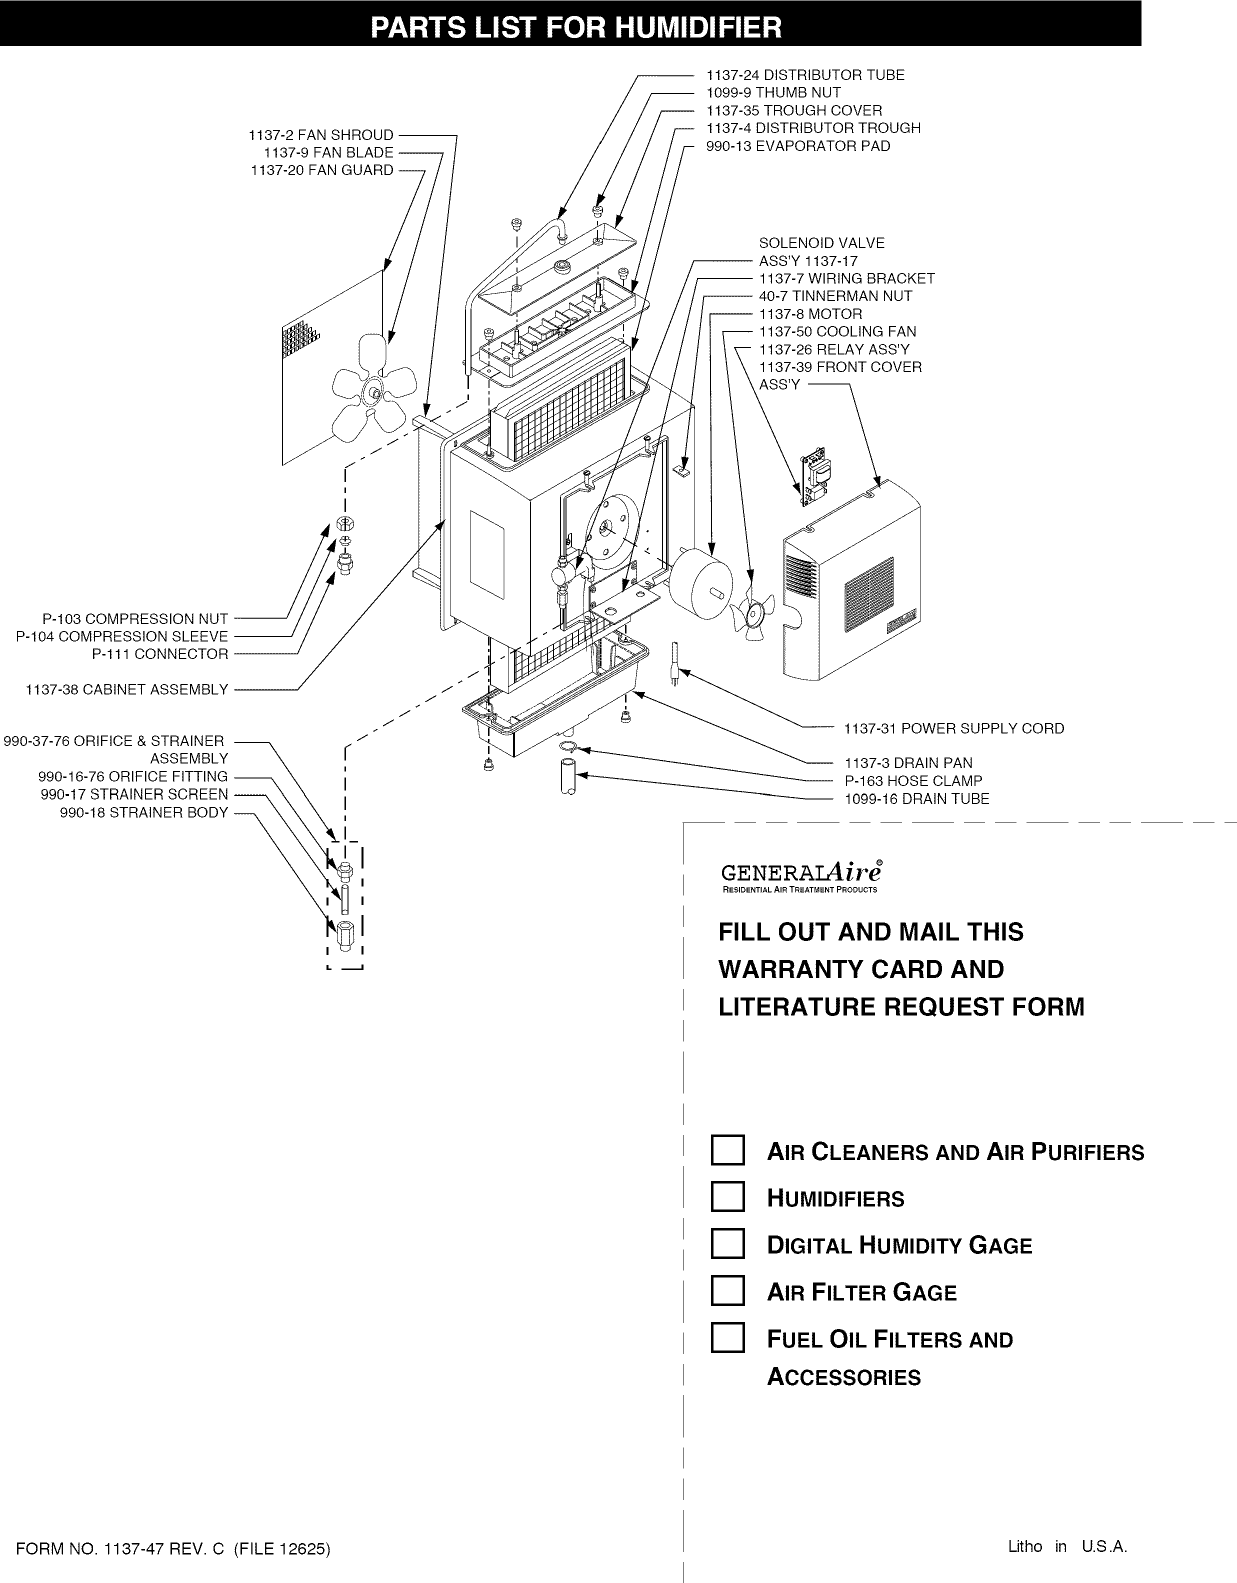 page 5 of 9 - generalaire 1137 user manual humidifier - manuals and guides  l1002554